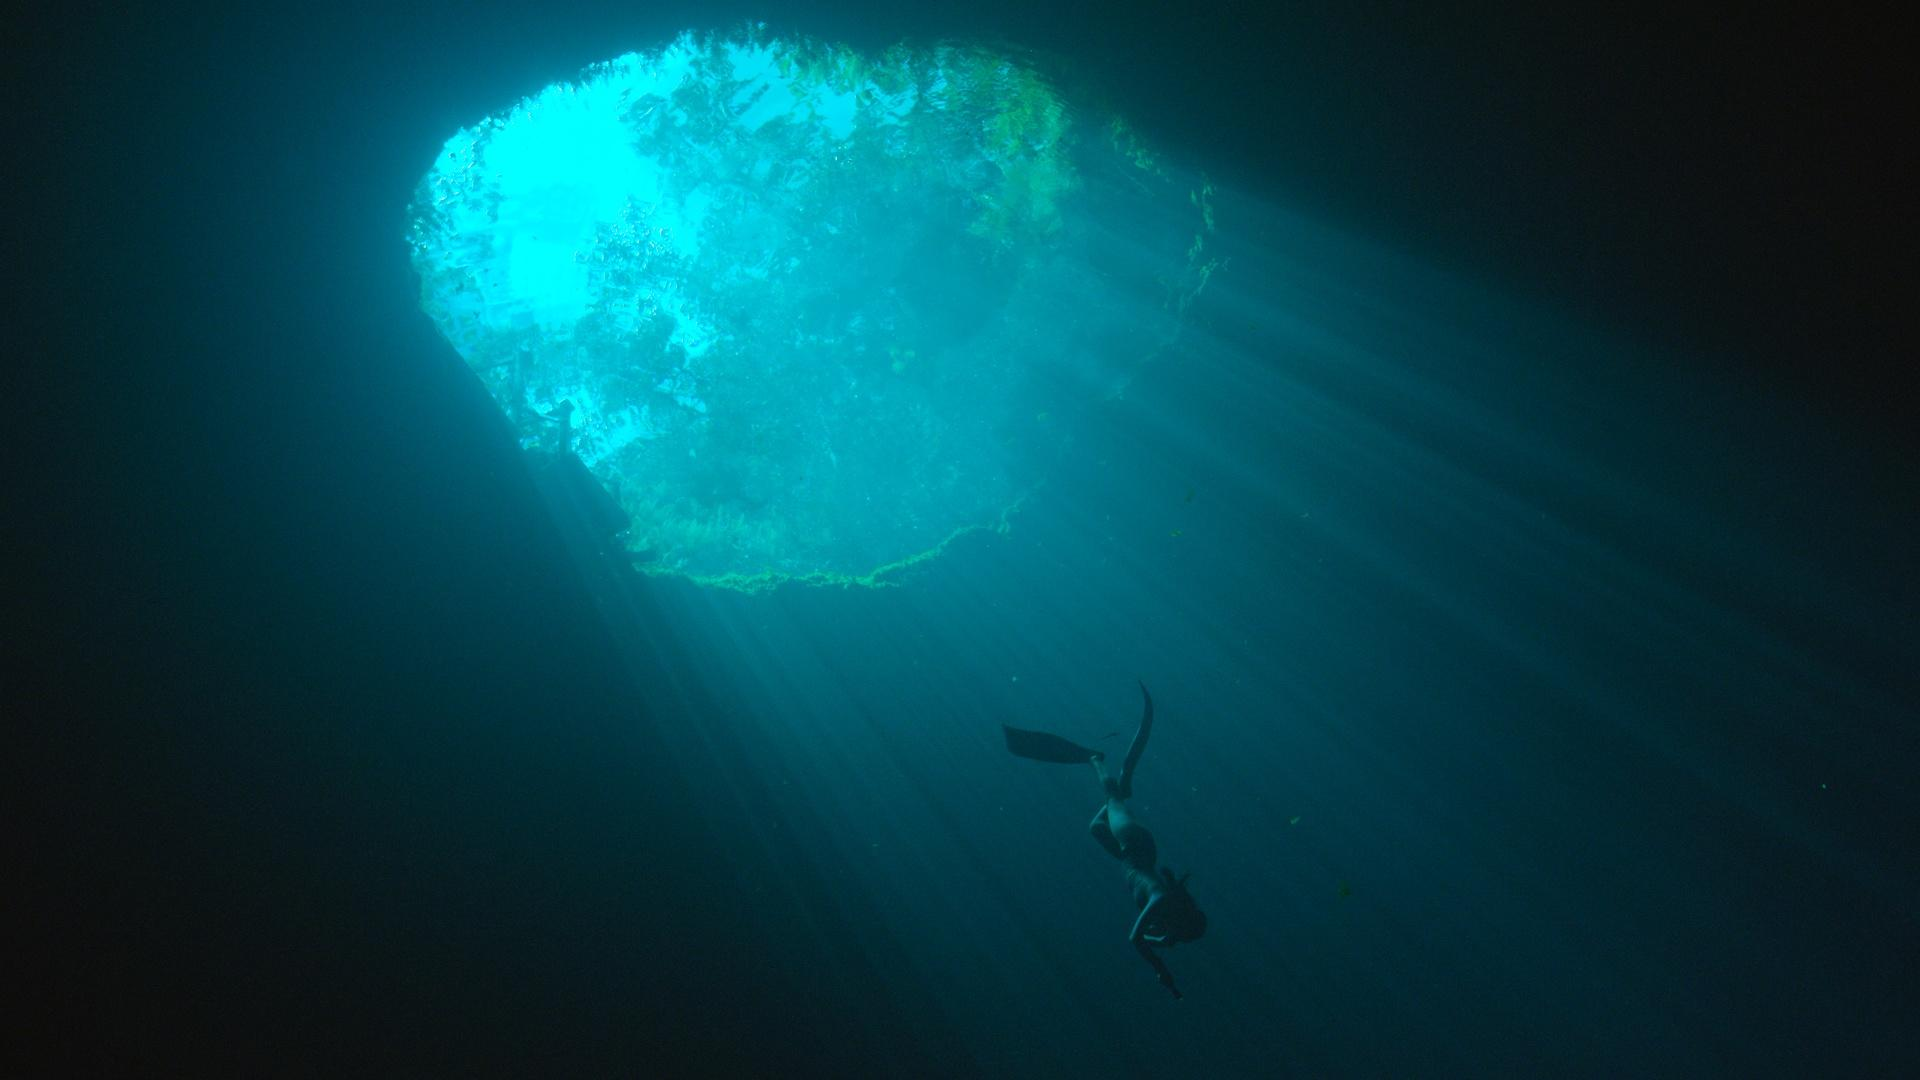 Camilla Jaber dives in a cenote, in the Yucatan, Mexico. A cenote, a small opening of underground water in the jungle can supply whole cities with water.